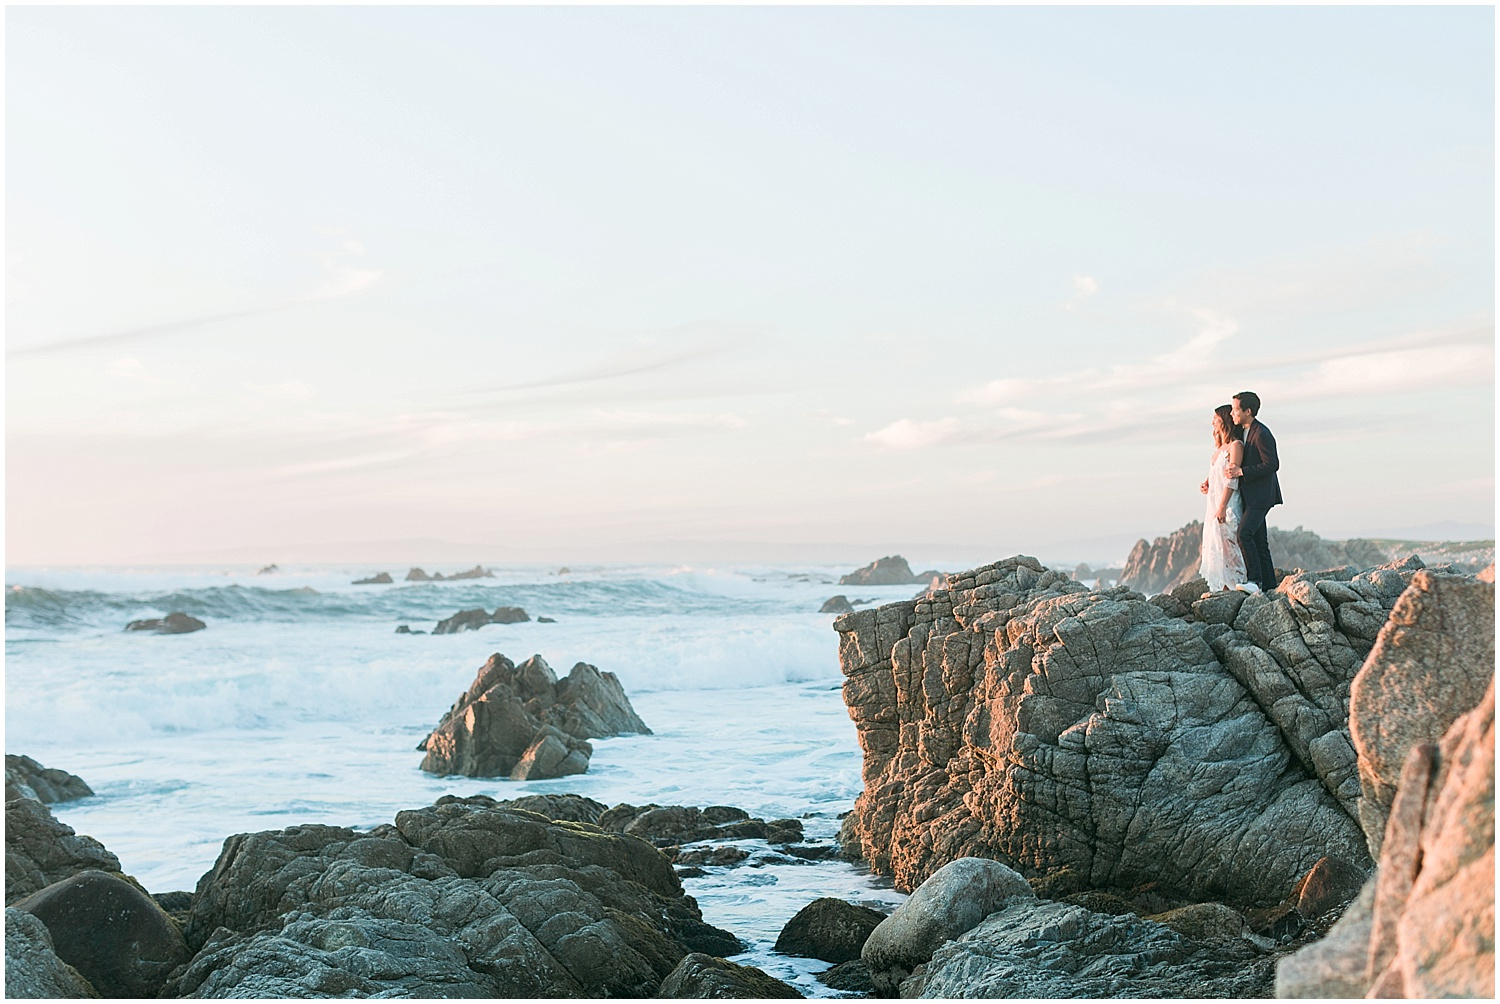 carmel_by_the_sea_17_mile_drive_engagement_session-022.jpg